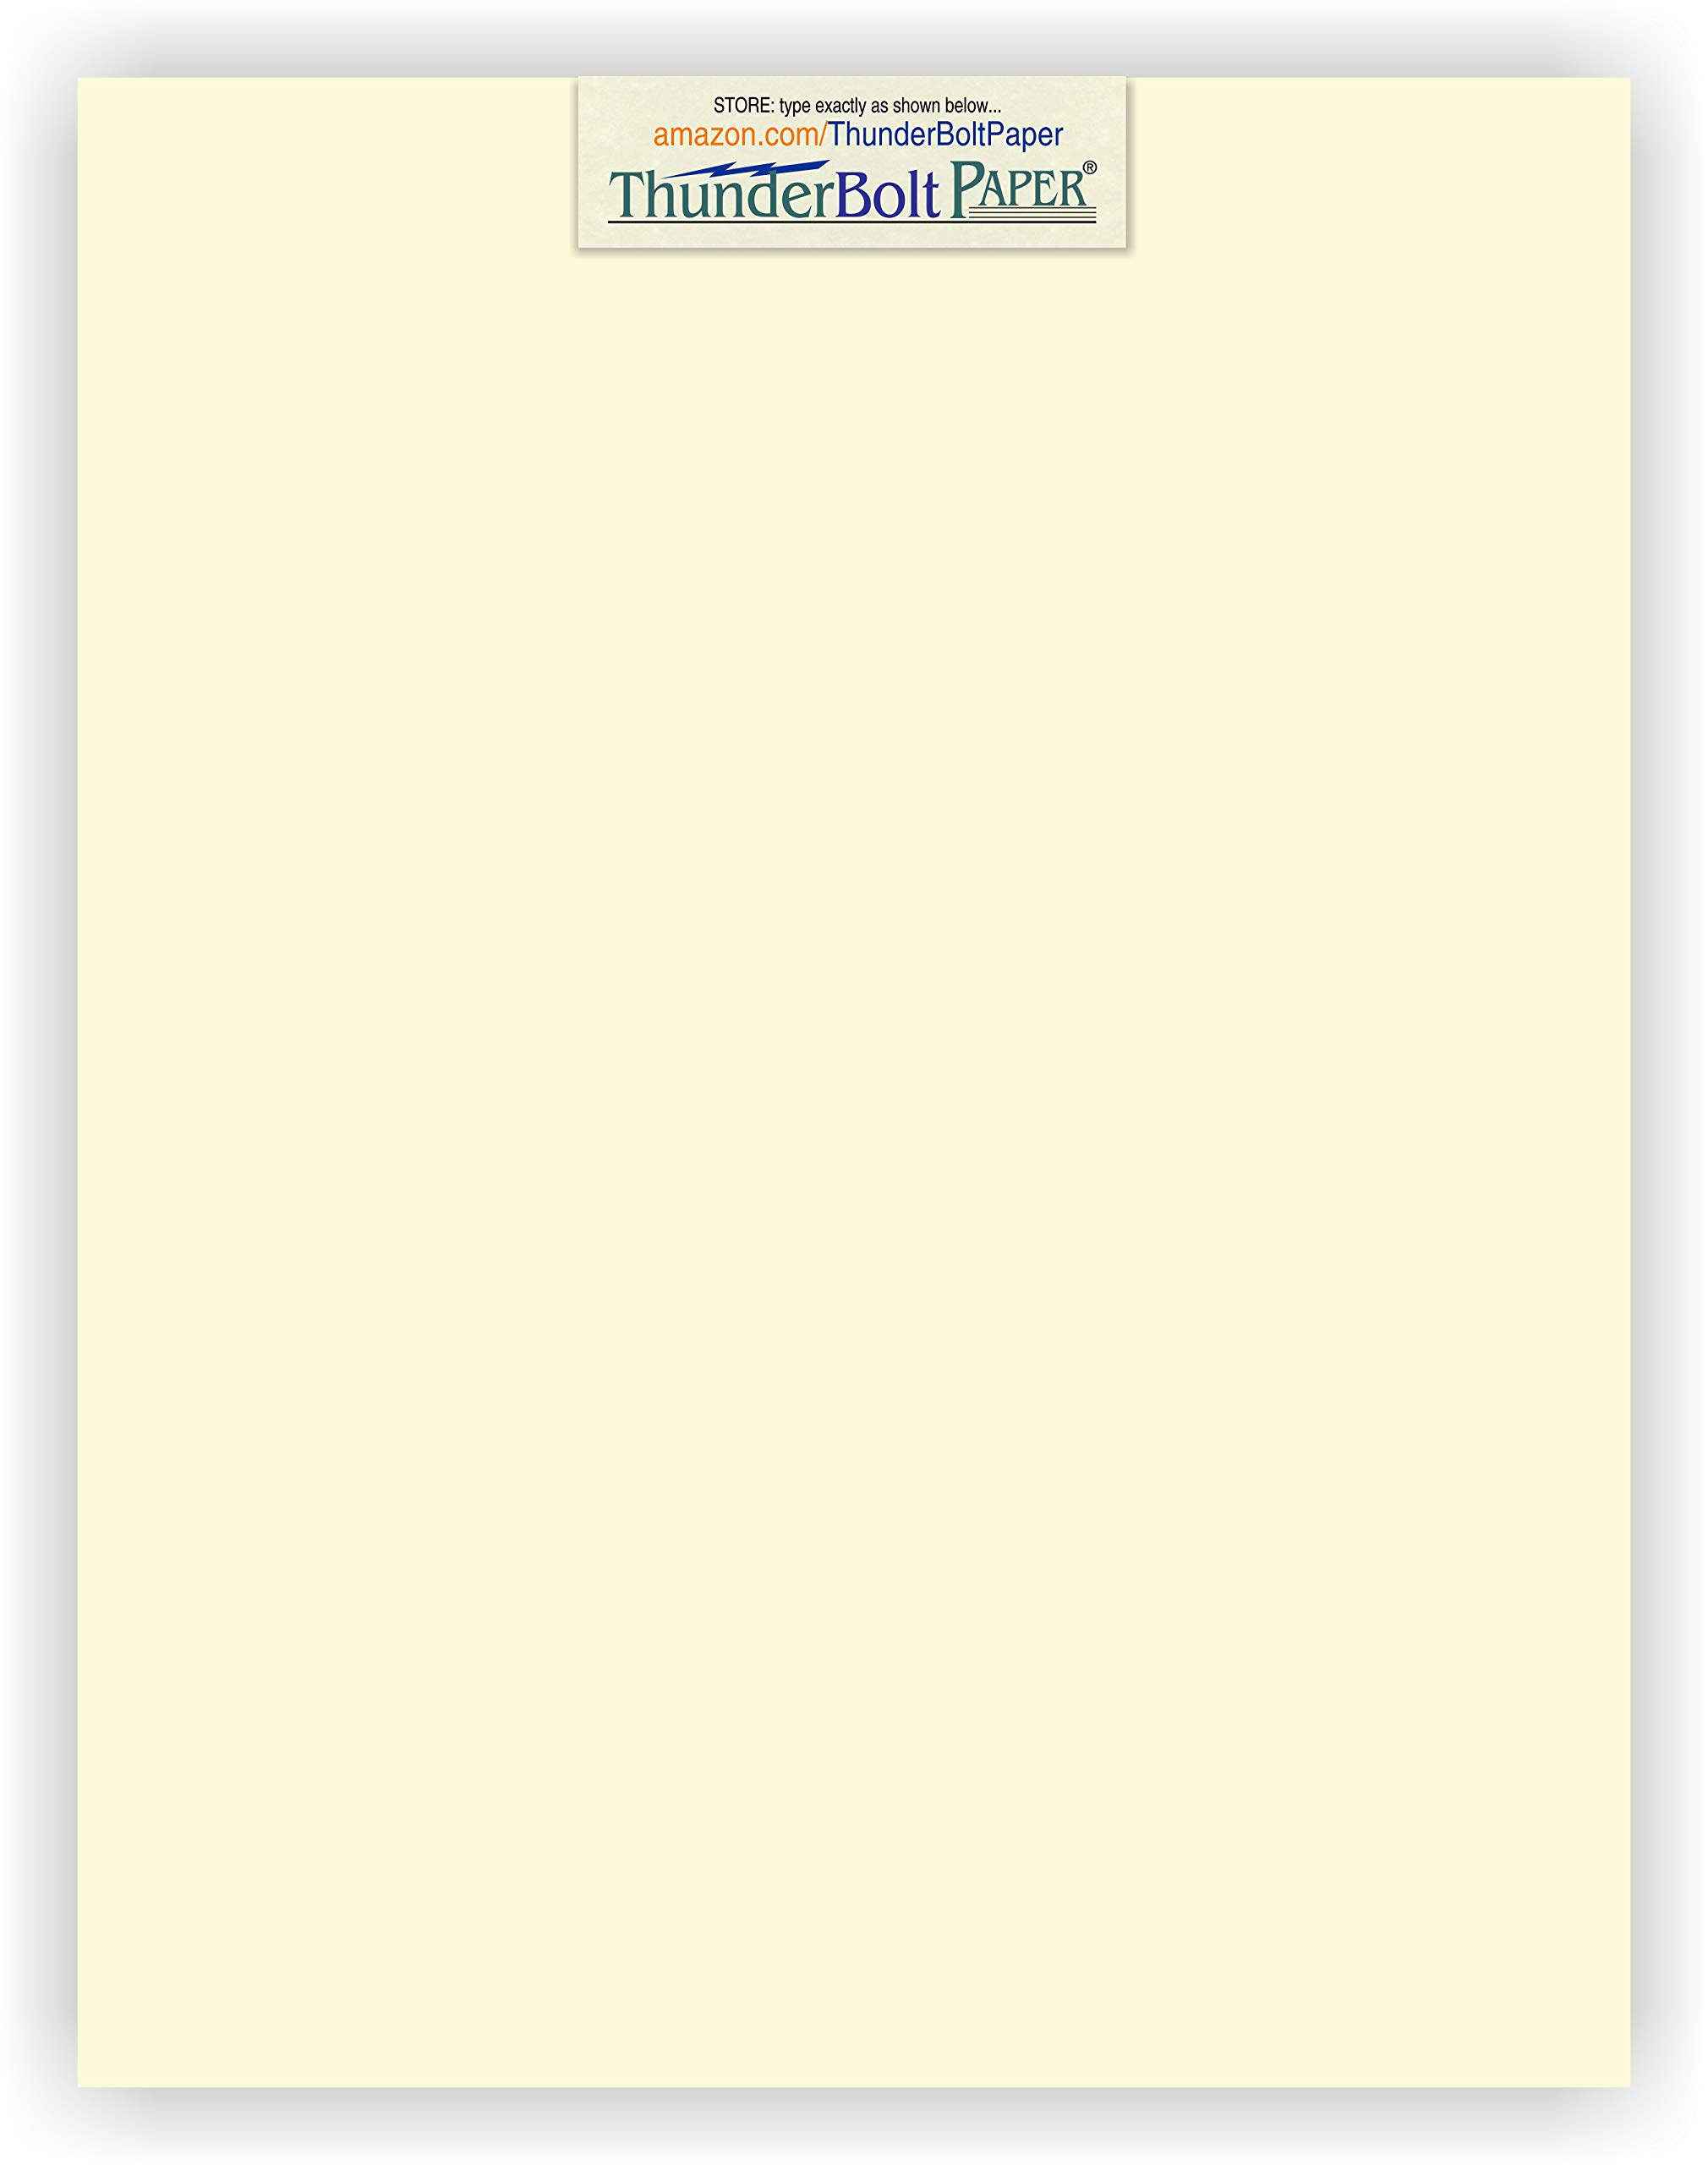 250 Natural Smooth Card Stock Sheets Paper - 7.25 X 10.5 inches Executive Size - 80# (80 lb/Pound) Cover Weight - Soft Cream White Color - Quality Paper - Smooth Finish